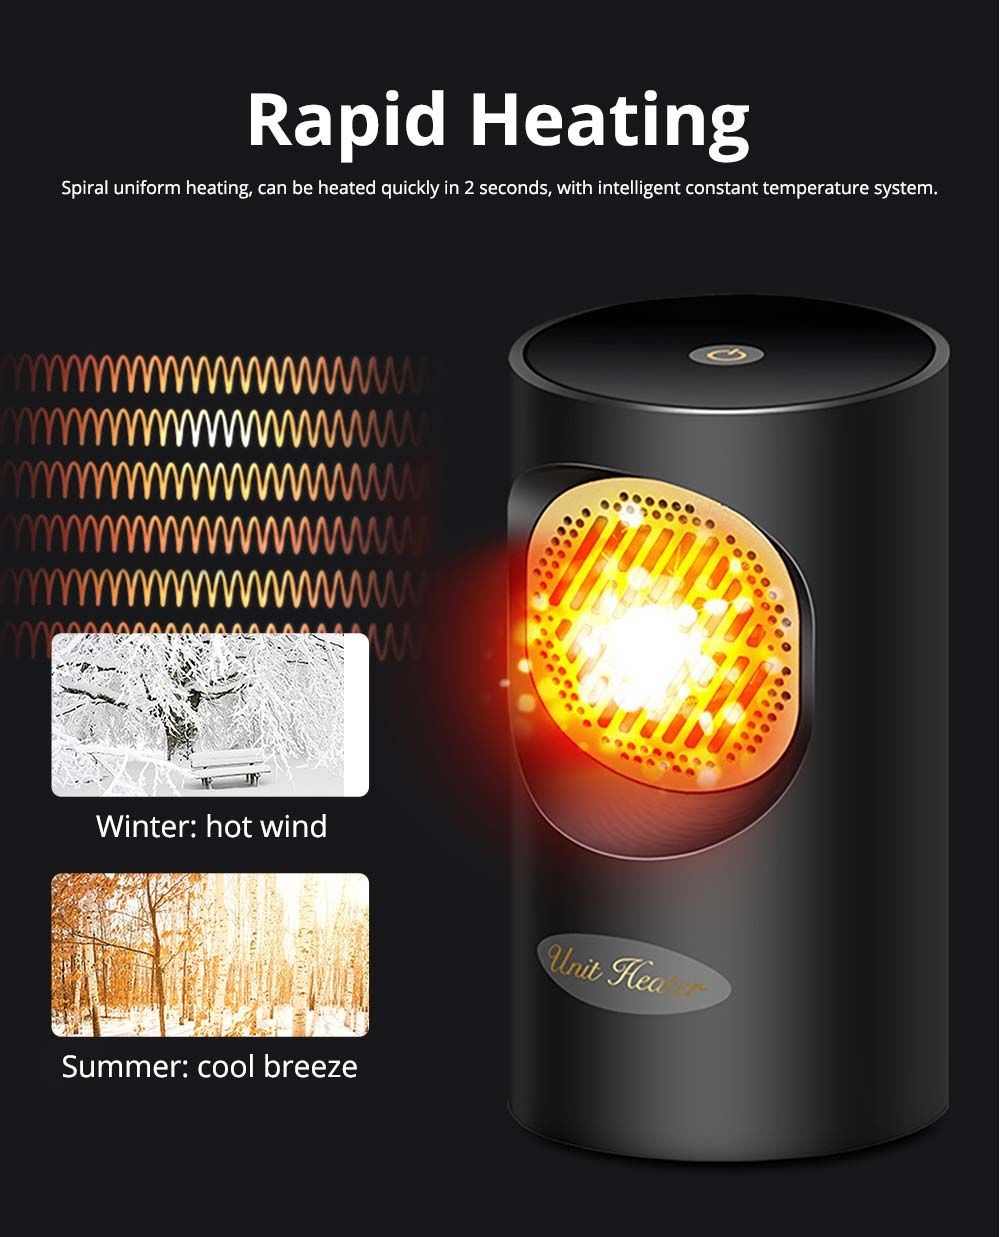 Rapid Heating